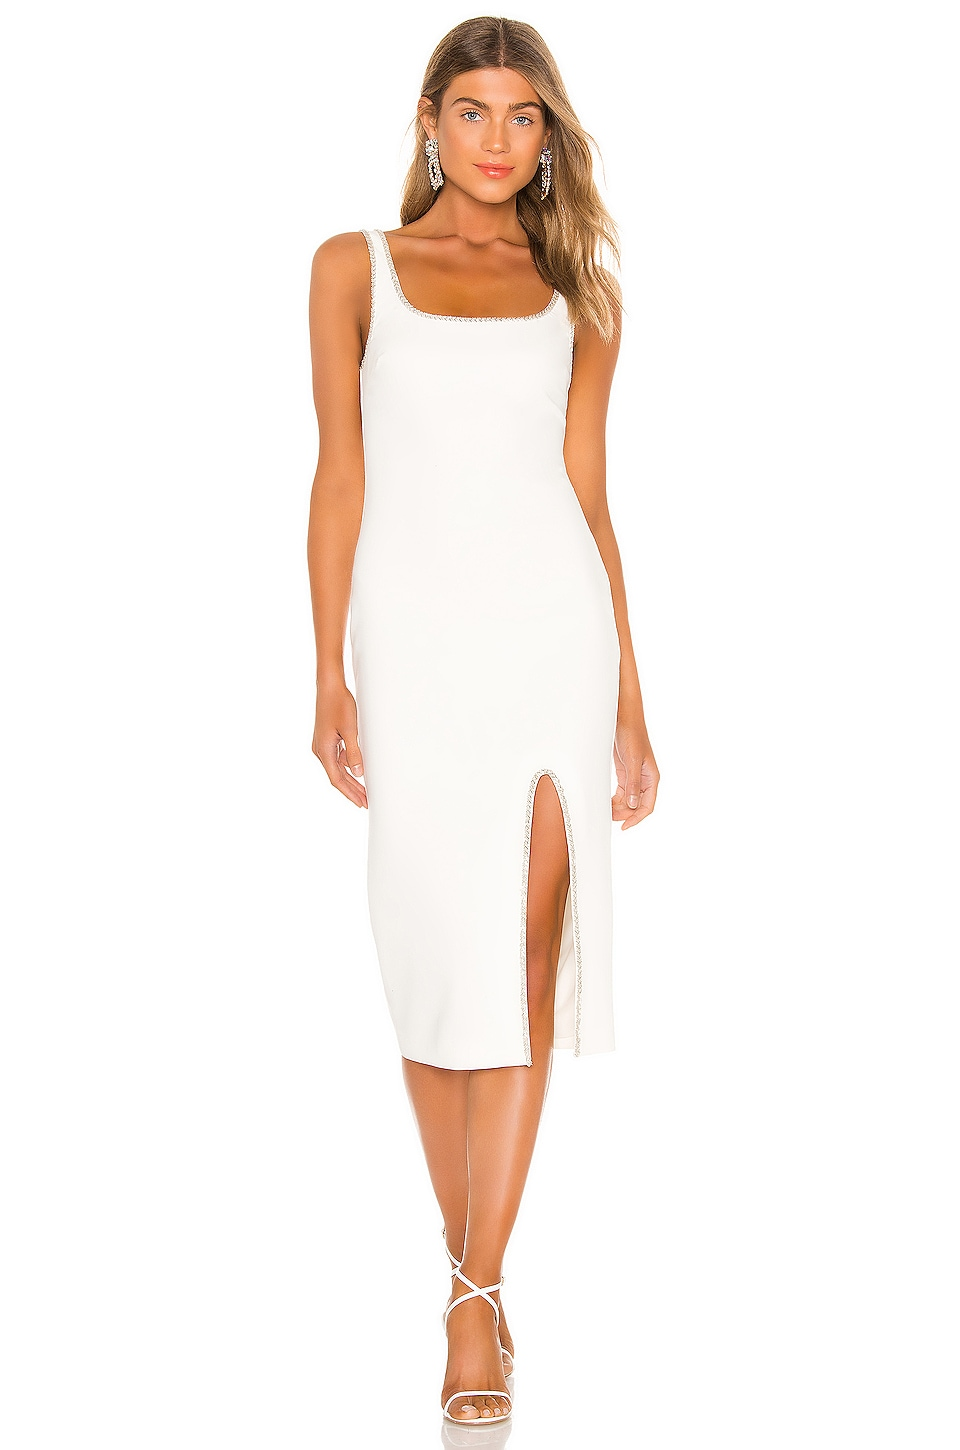 LIKELY Gisela Crystal Trim Dress in White